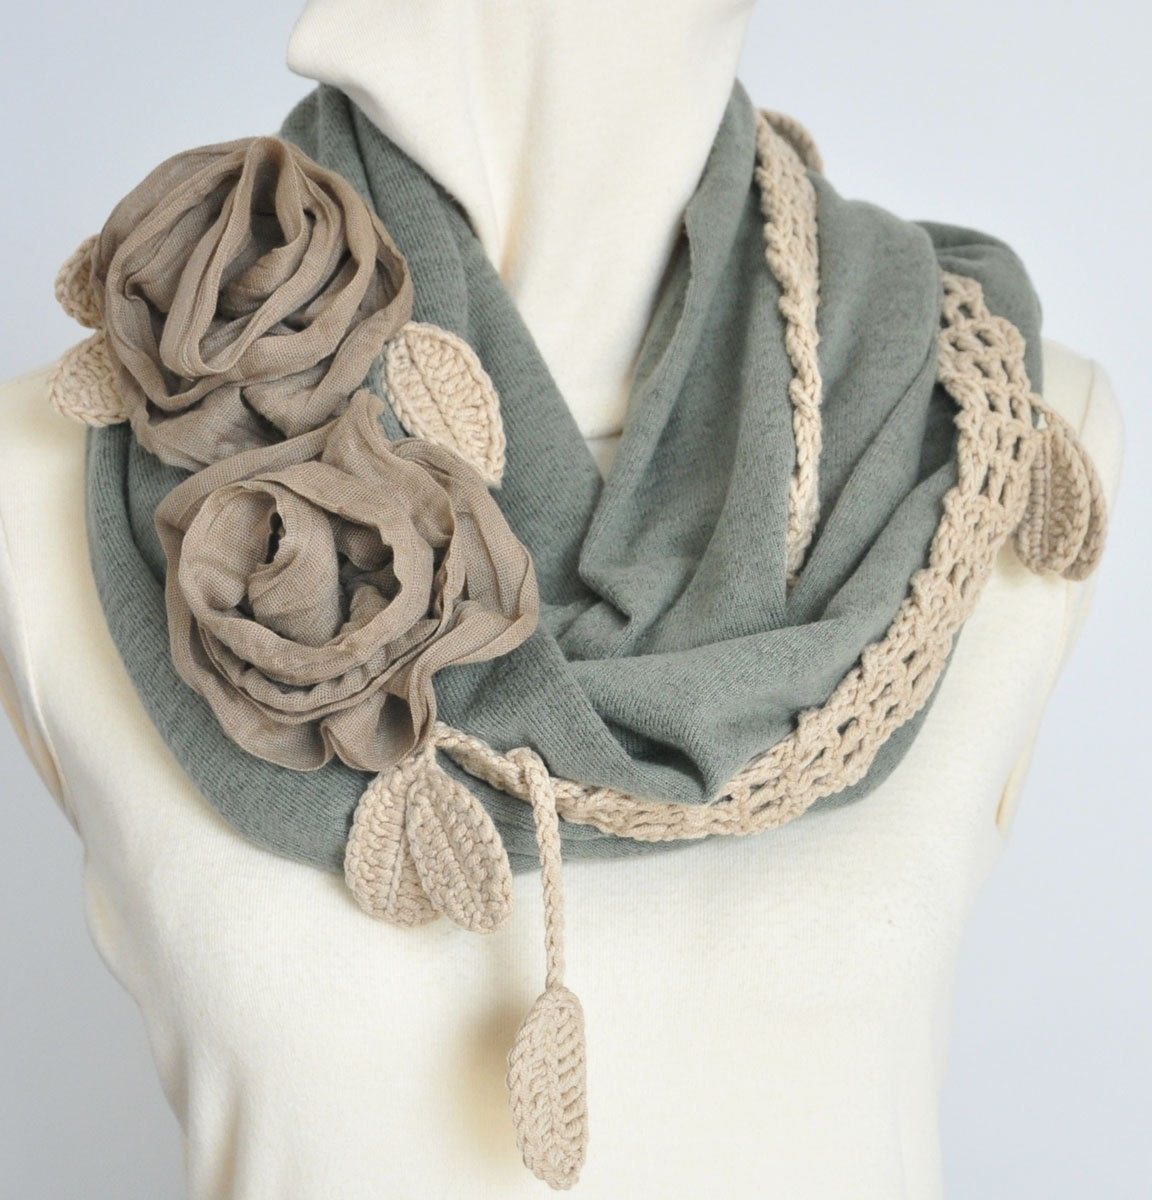 FLORAL JERSY - Green - Crochet Lace and Jersy Tube Scarf/ Shawl/Shrug